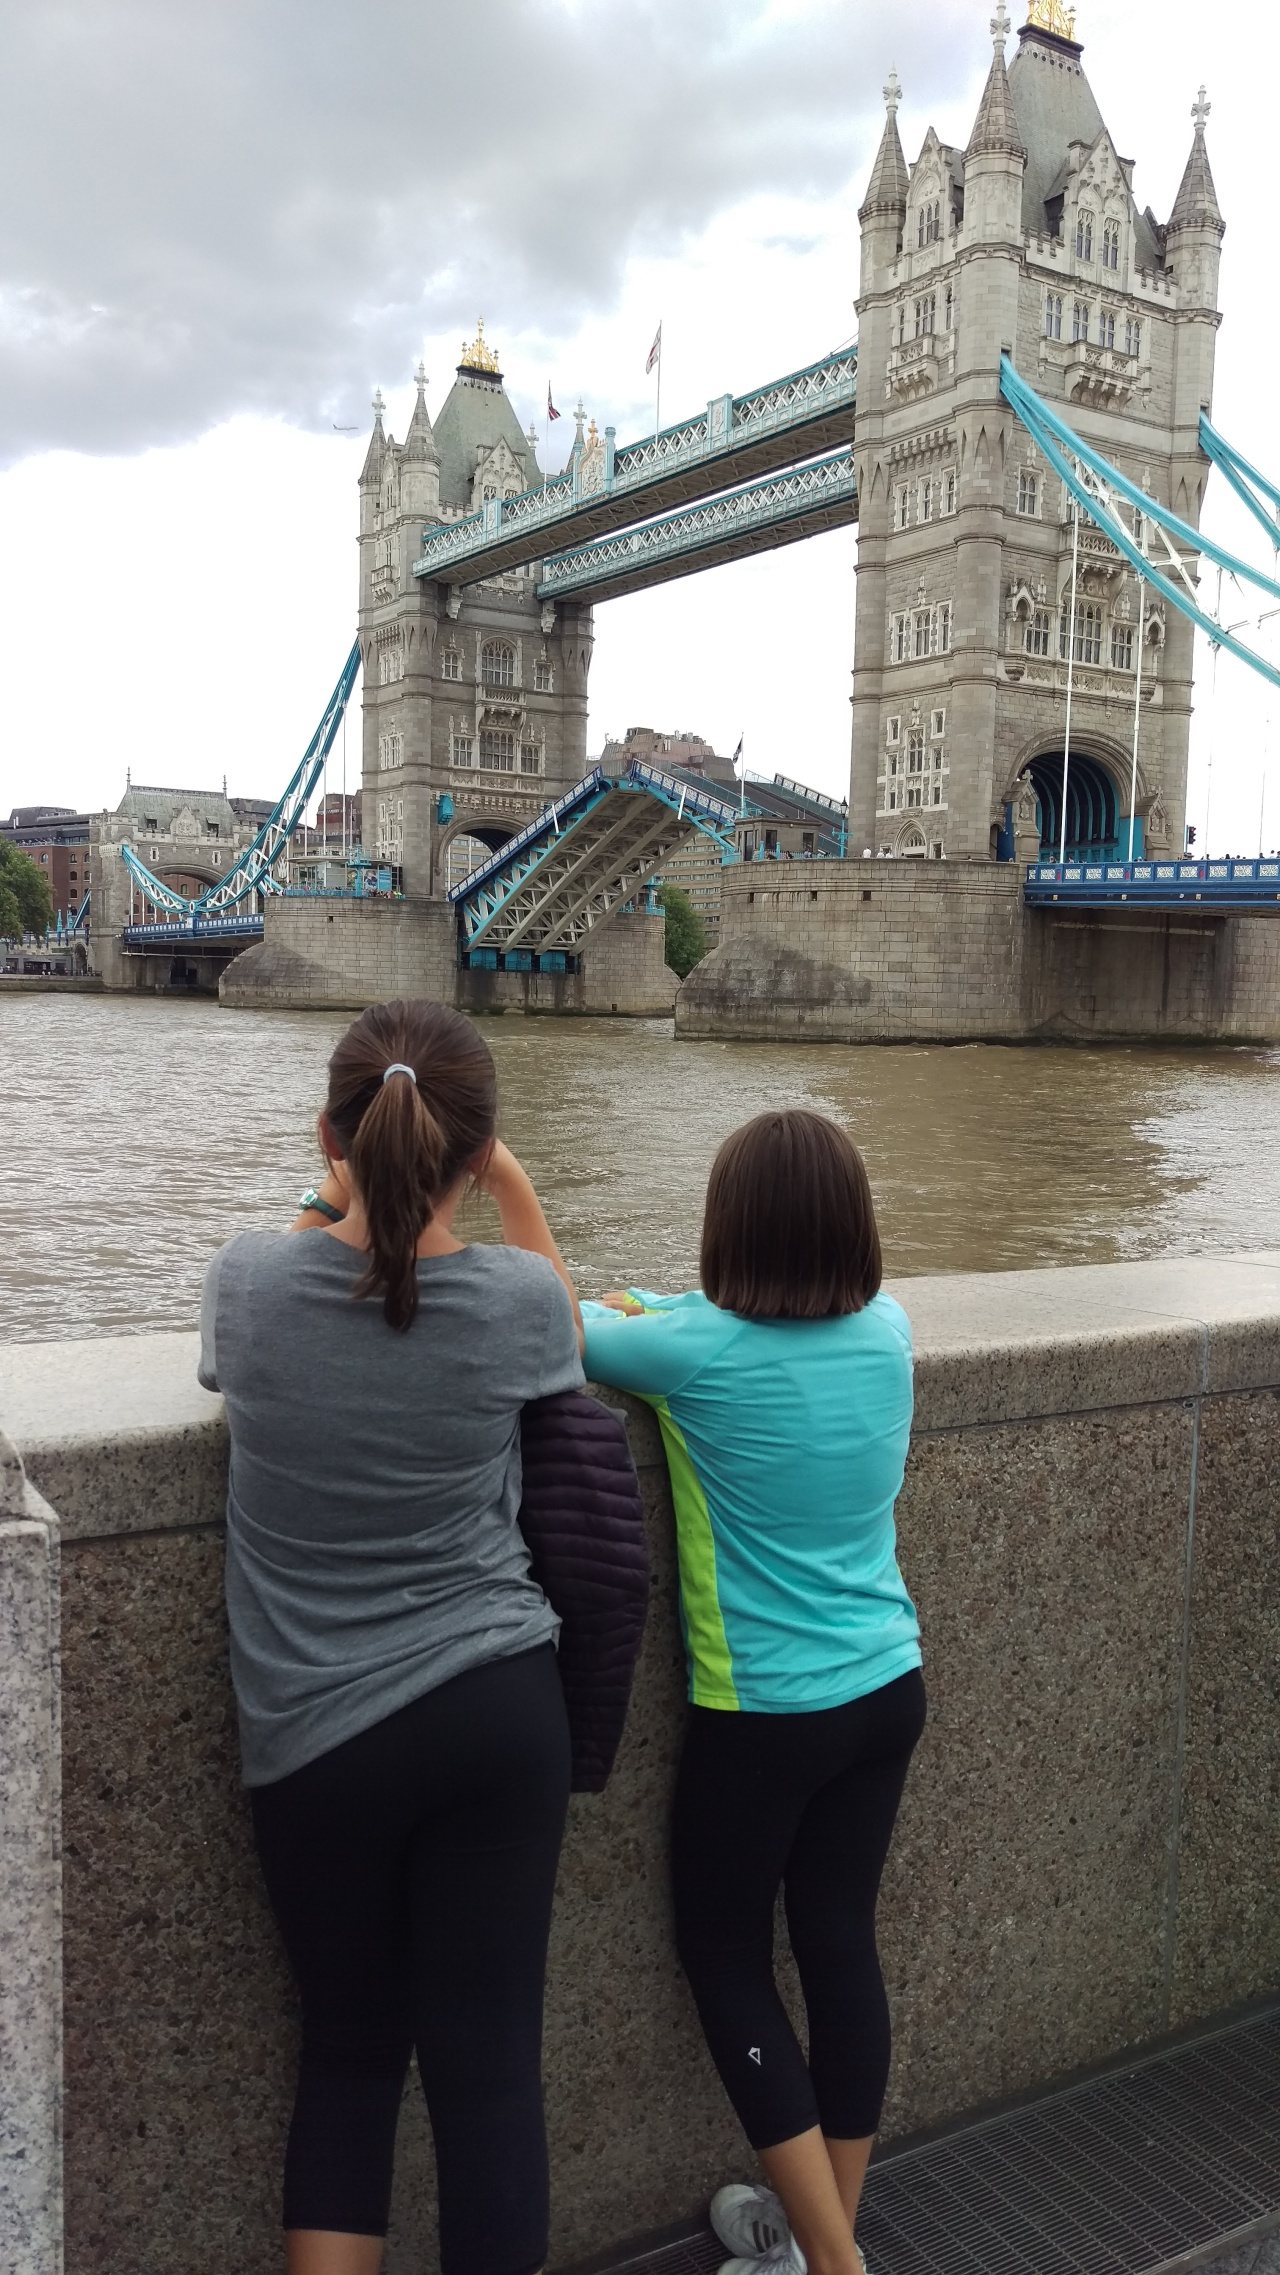 London and Tower Bridge by Annabelle